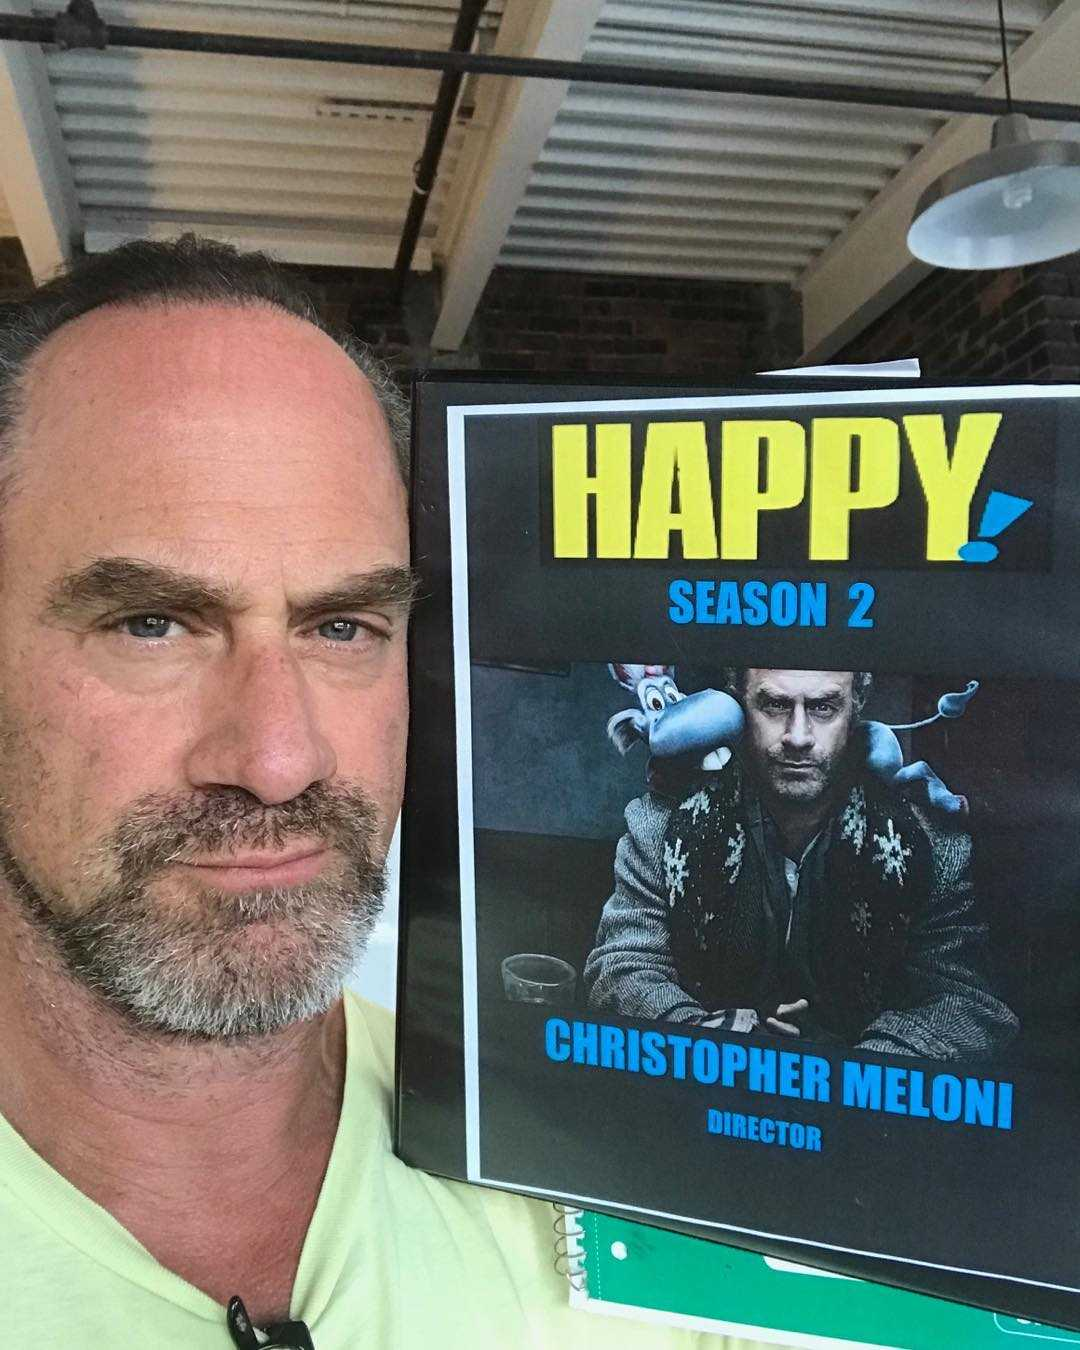 Christopher Meloni promoting his new series Happy!